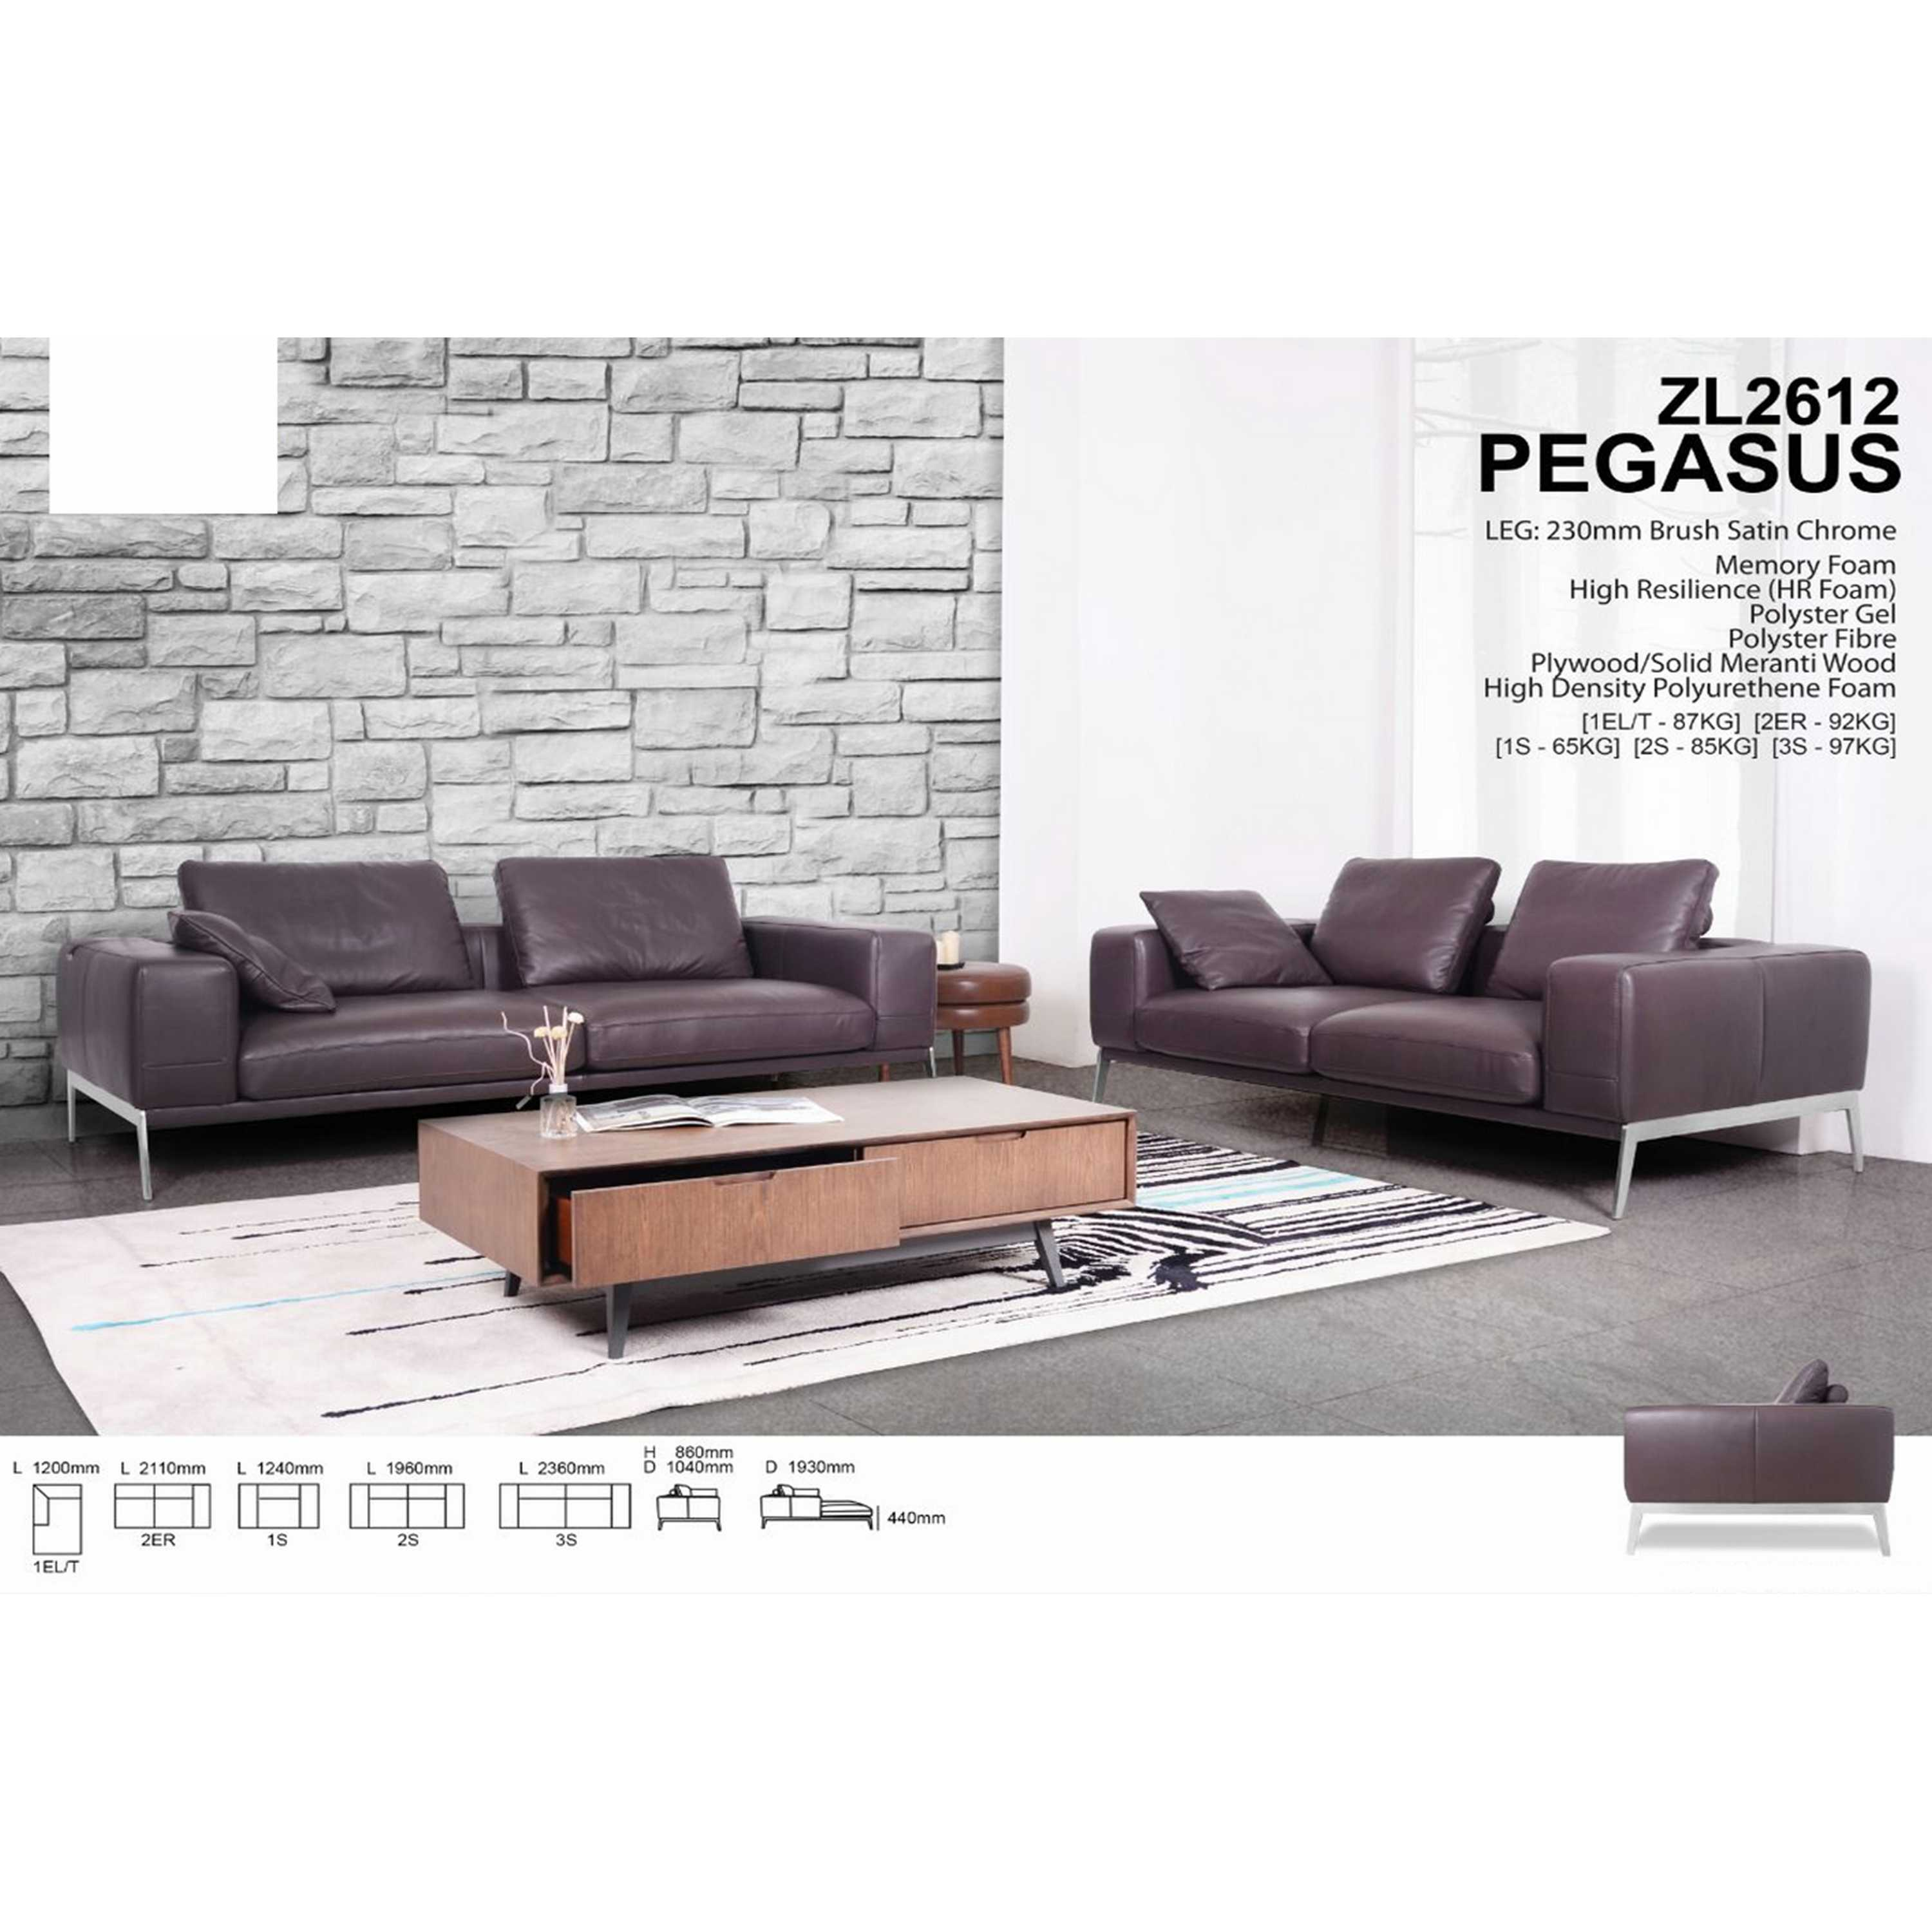 2er Sofas Zl2612 Pegasus Sofa 2 Seater 1960mm